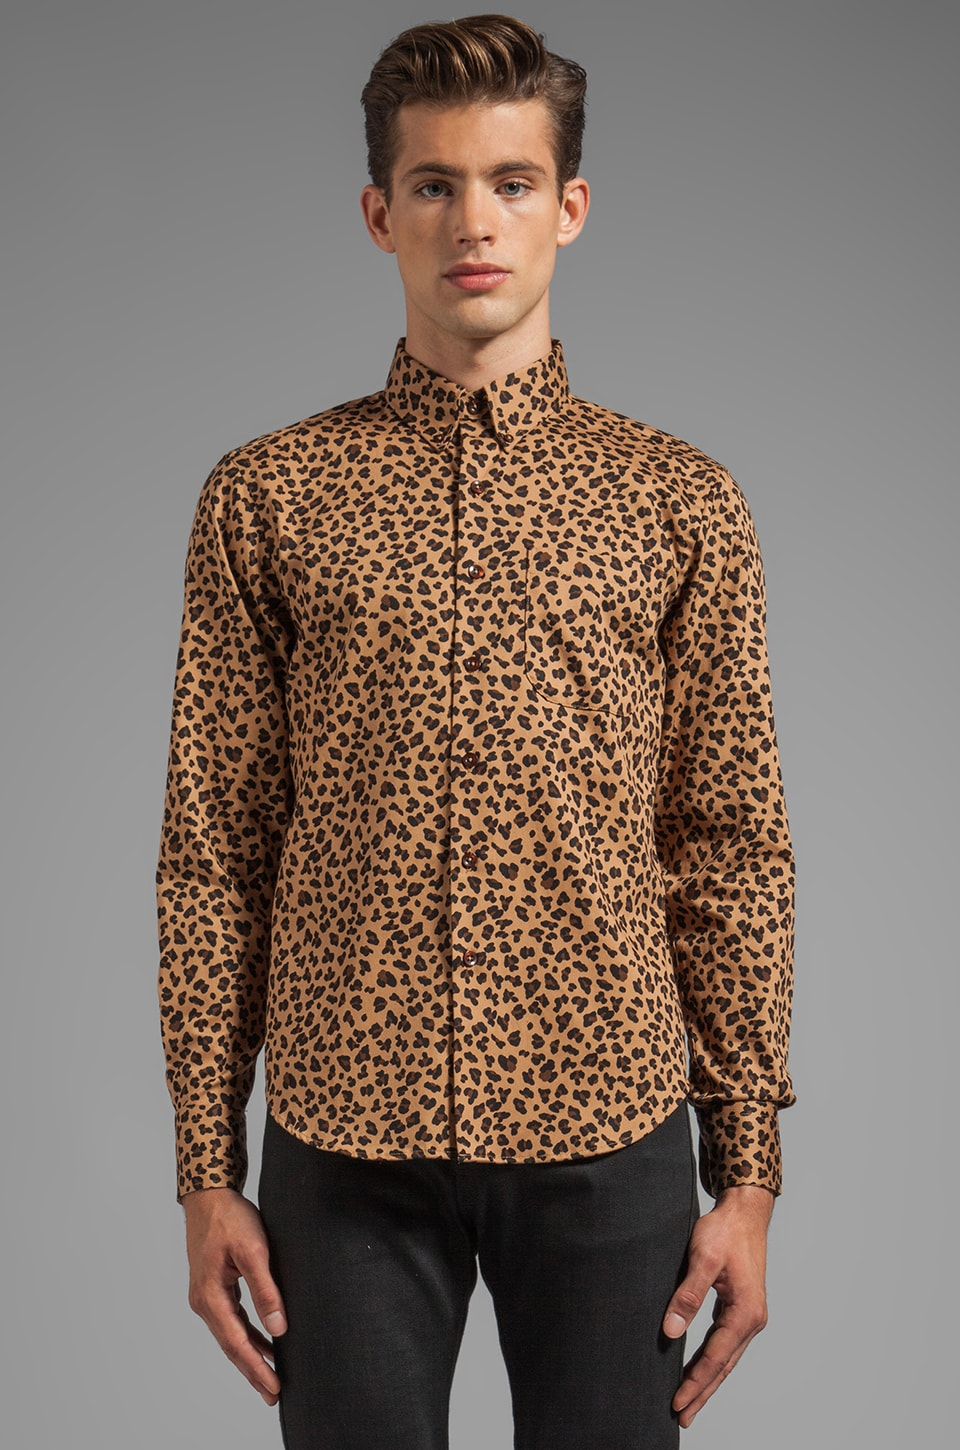 Naked & Famous Denim Regular Shirt Leopard Print in Tan